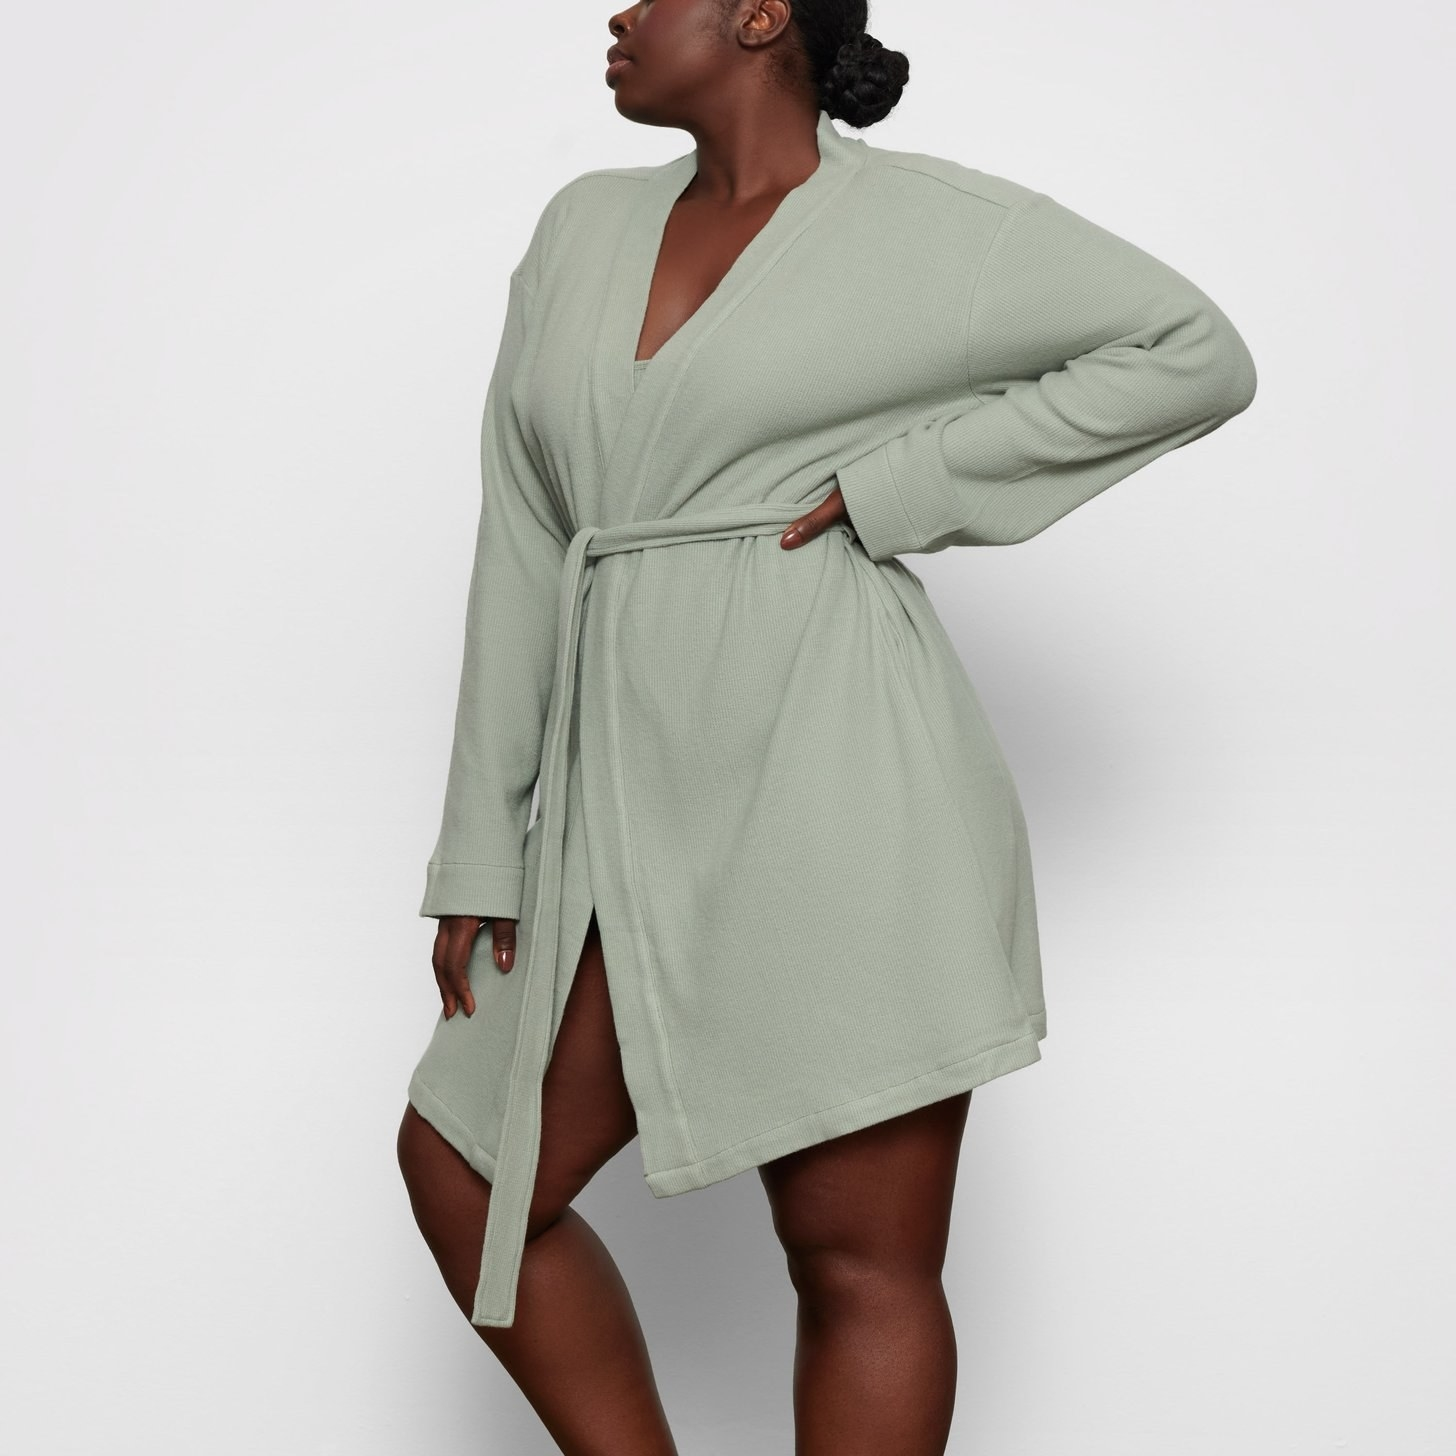 a model in the short robe in light sage green